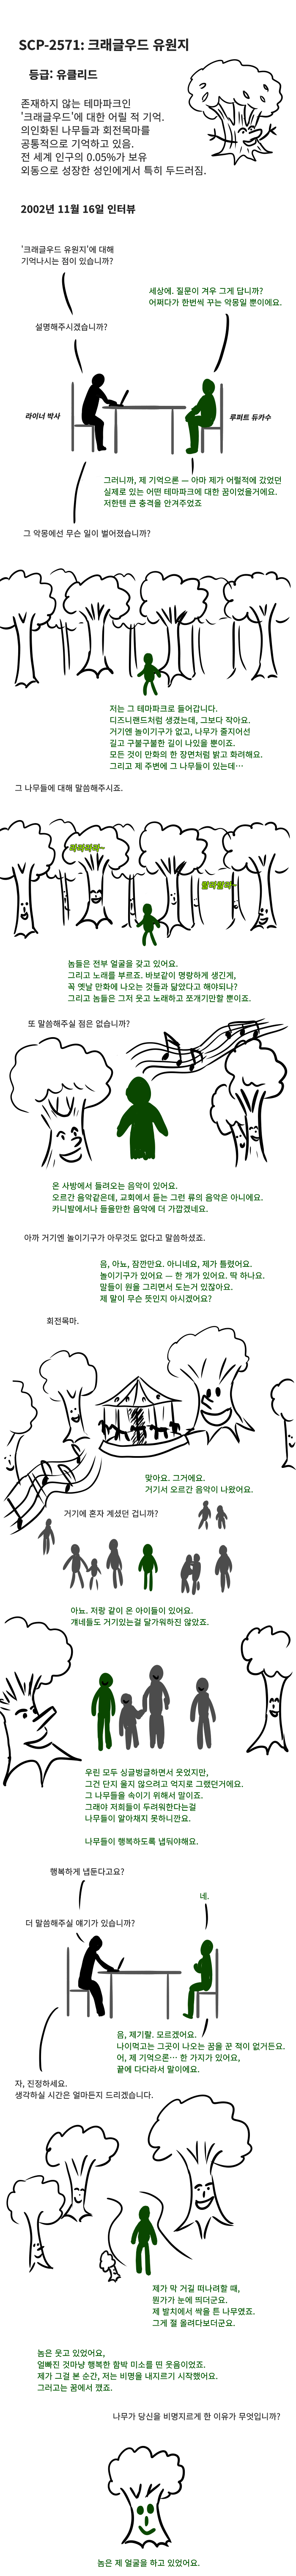 1565995100.png SCP 만화 펌) SCP-2571 \